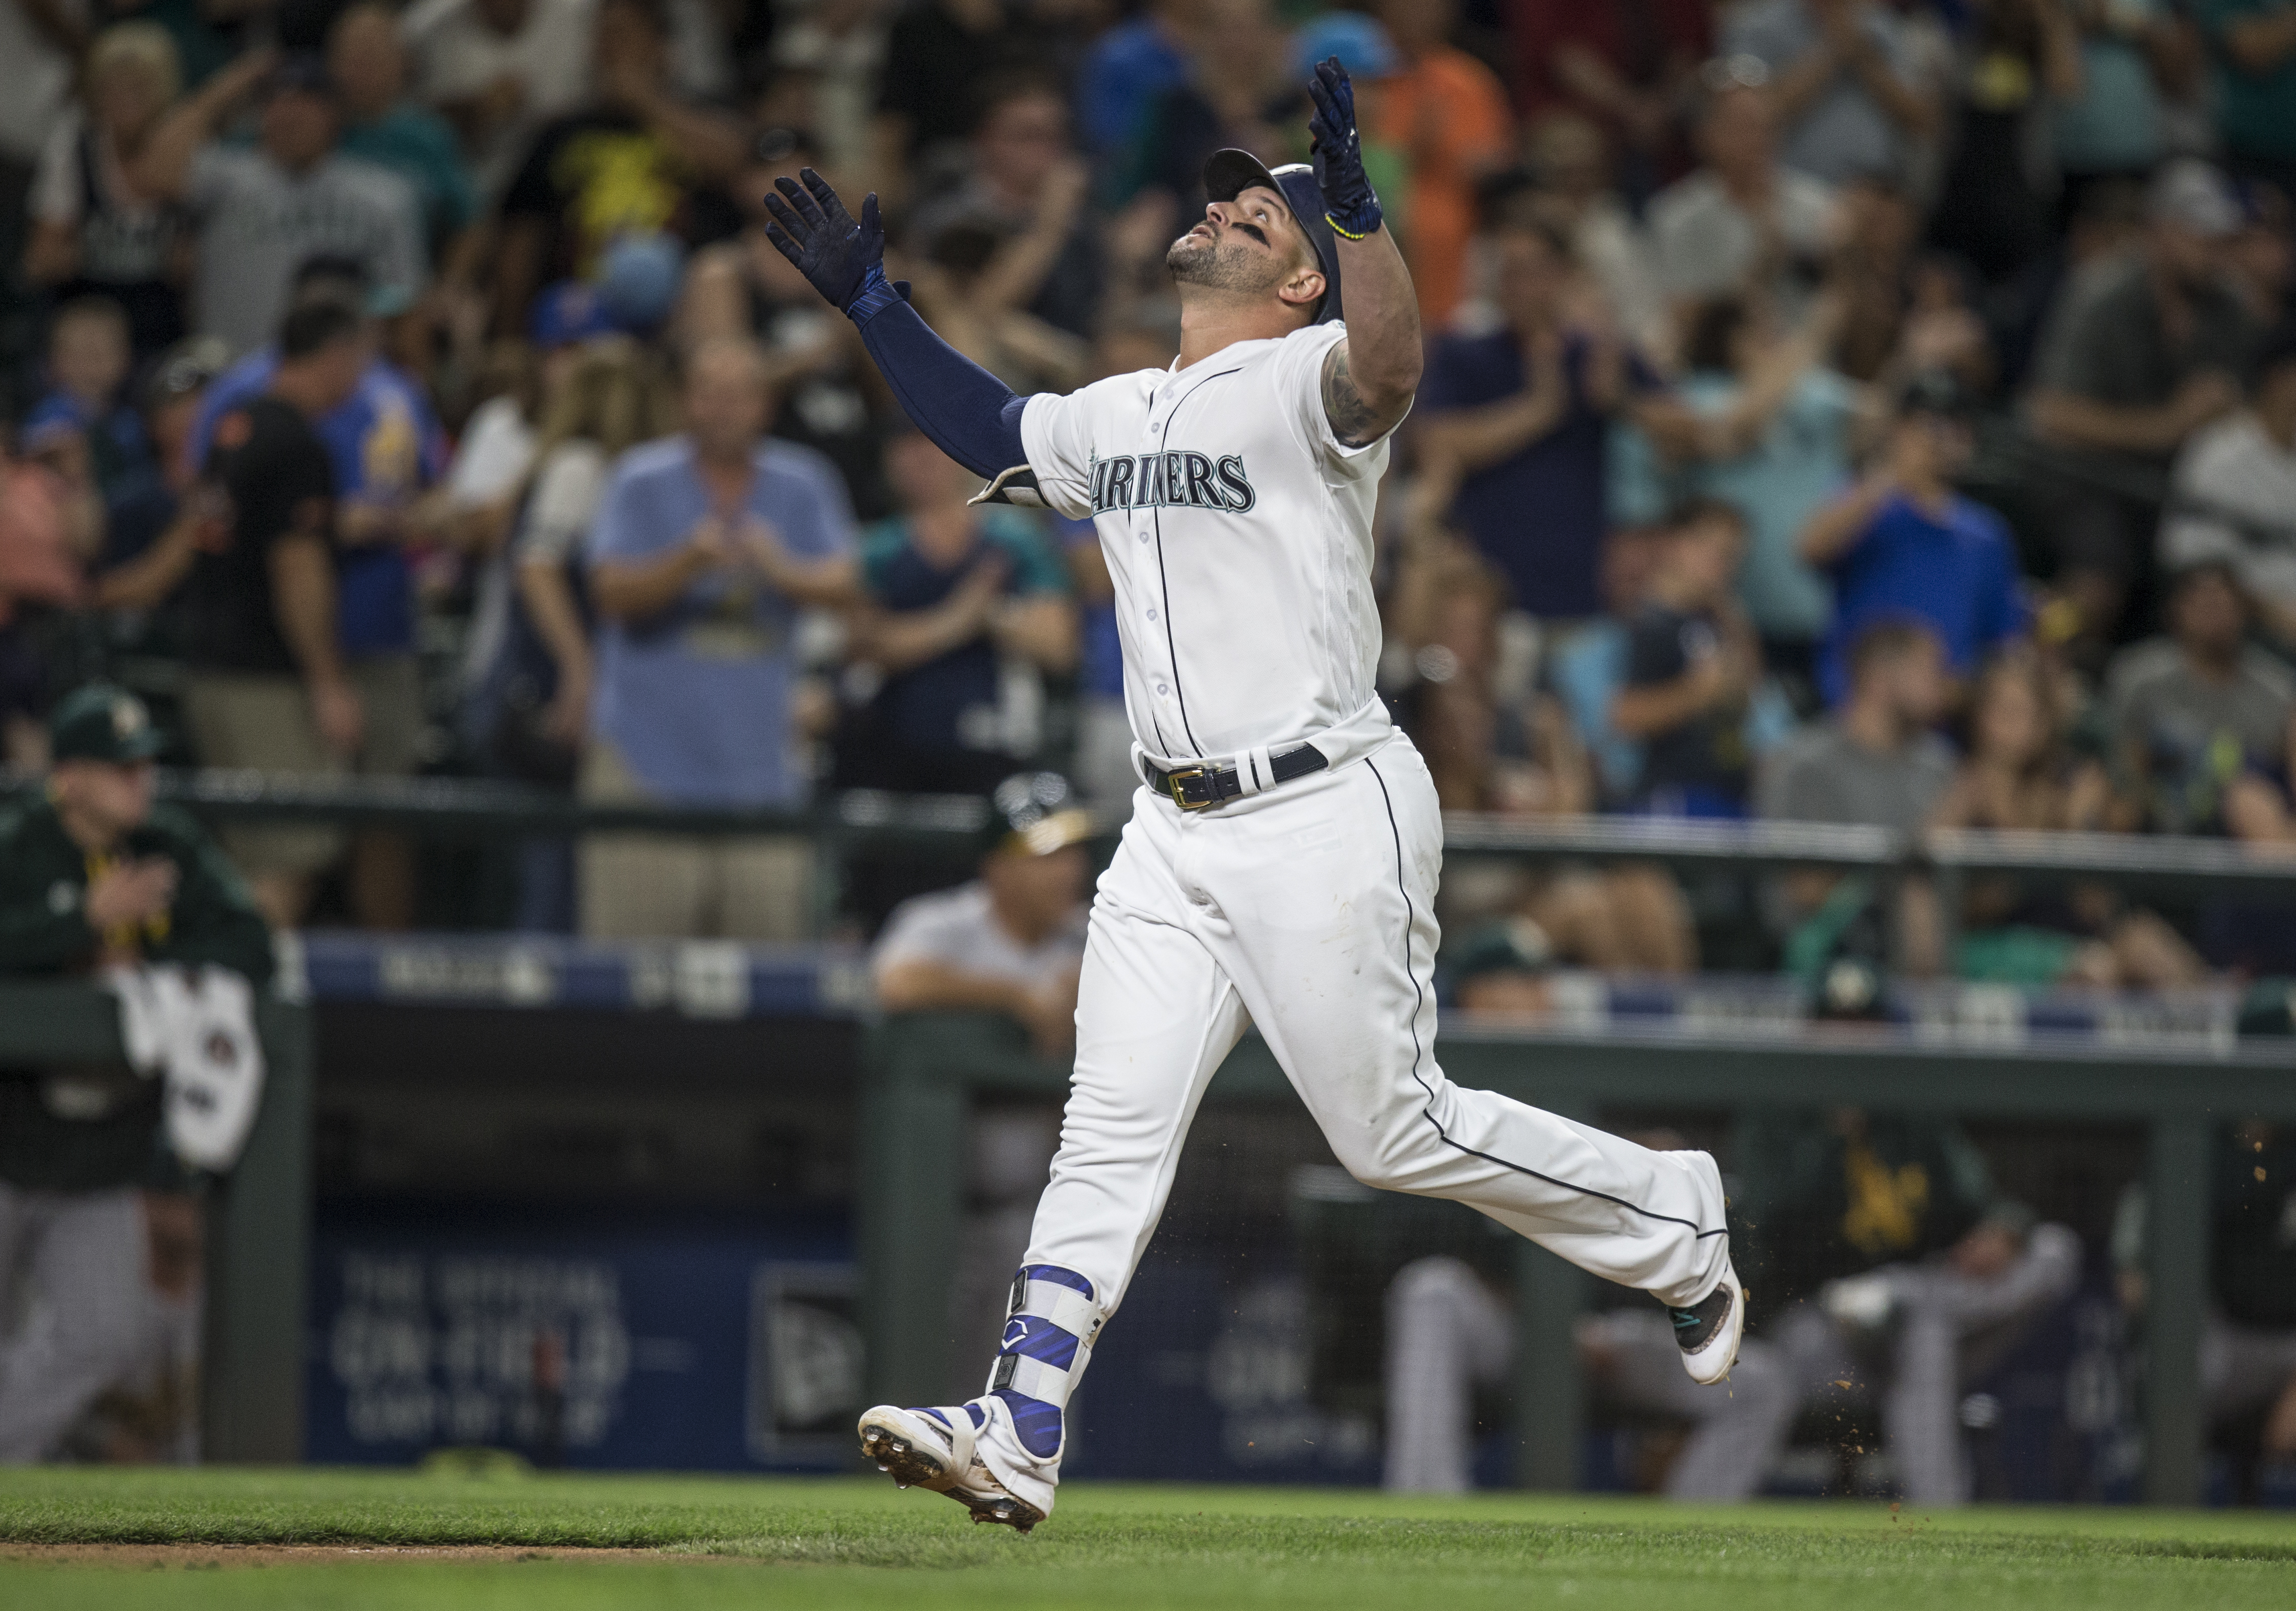 Seattle Mariners' Yonder Alonso celebrates his solo home run off Oakland Athletics starting pitcher Jharel Cotton during the fifth inning of a baseball game on Saturday, Sept. 2, 2017, in Seattle. (AP Photo/Stephen Brashear)